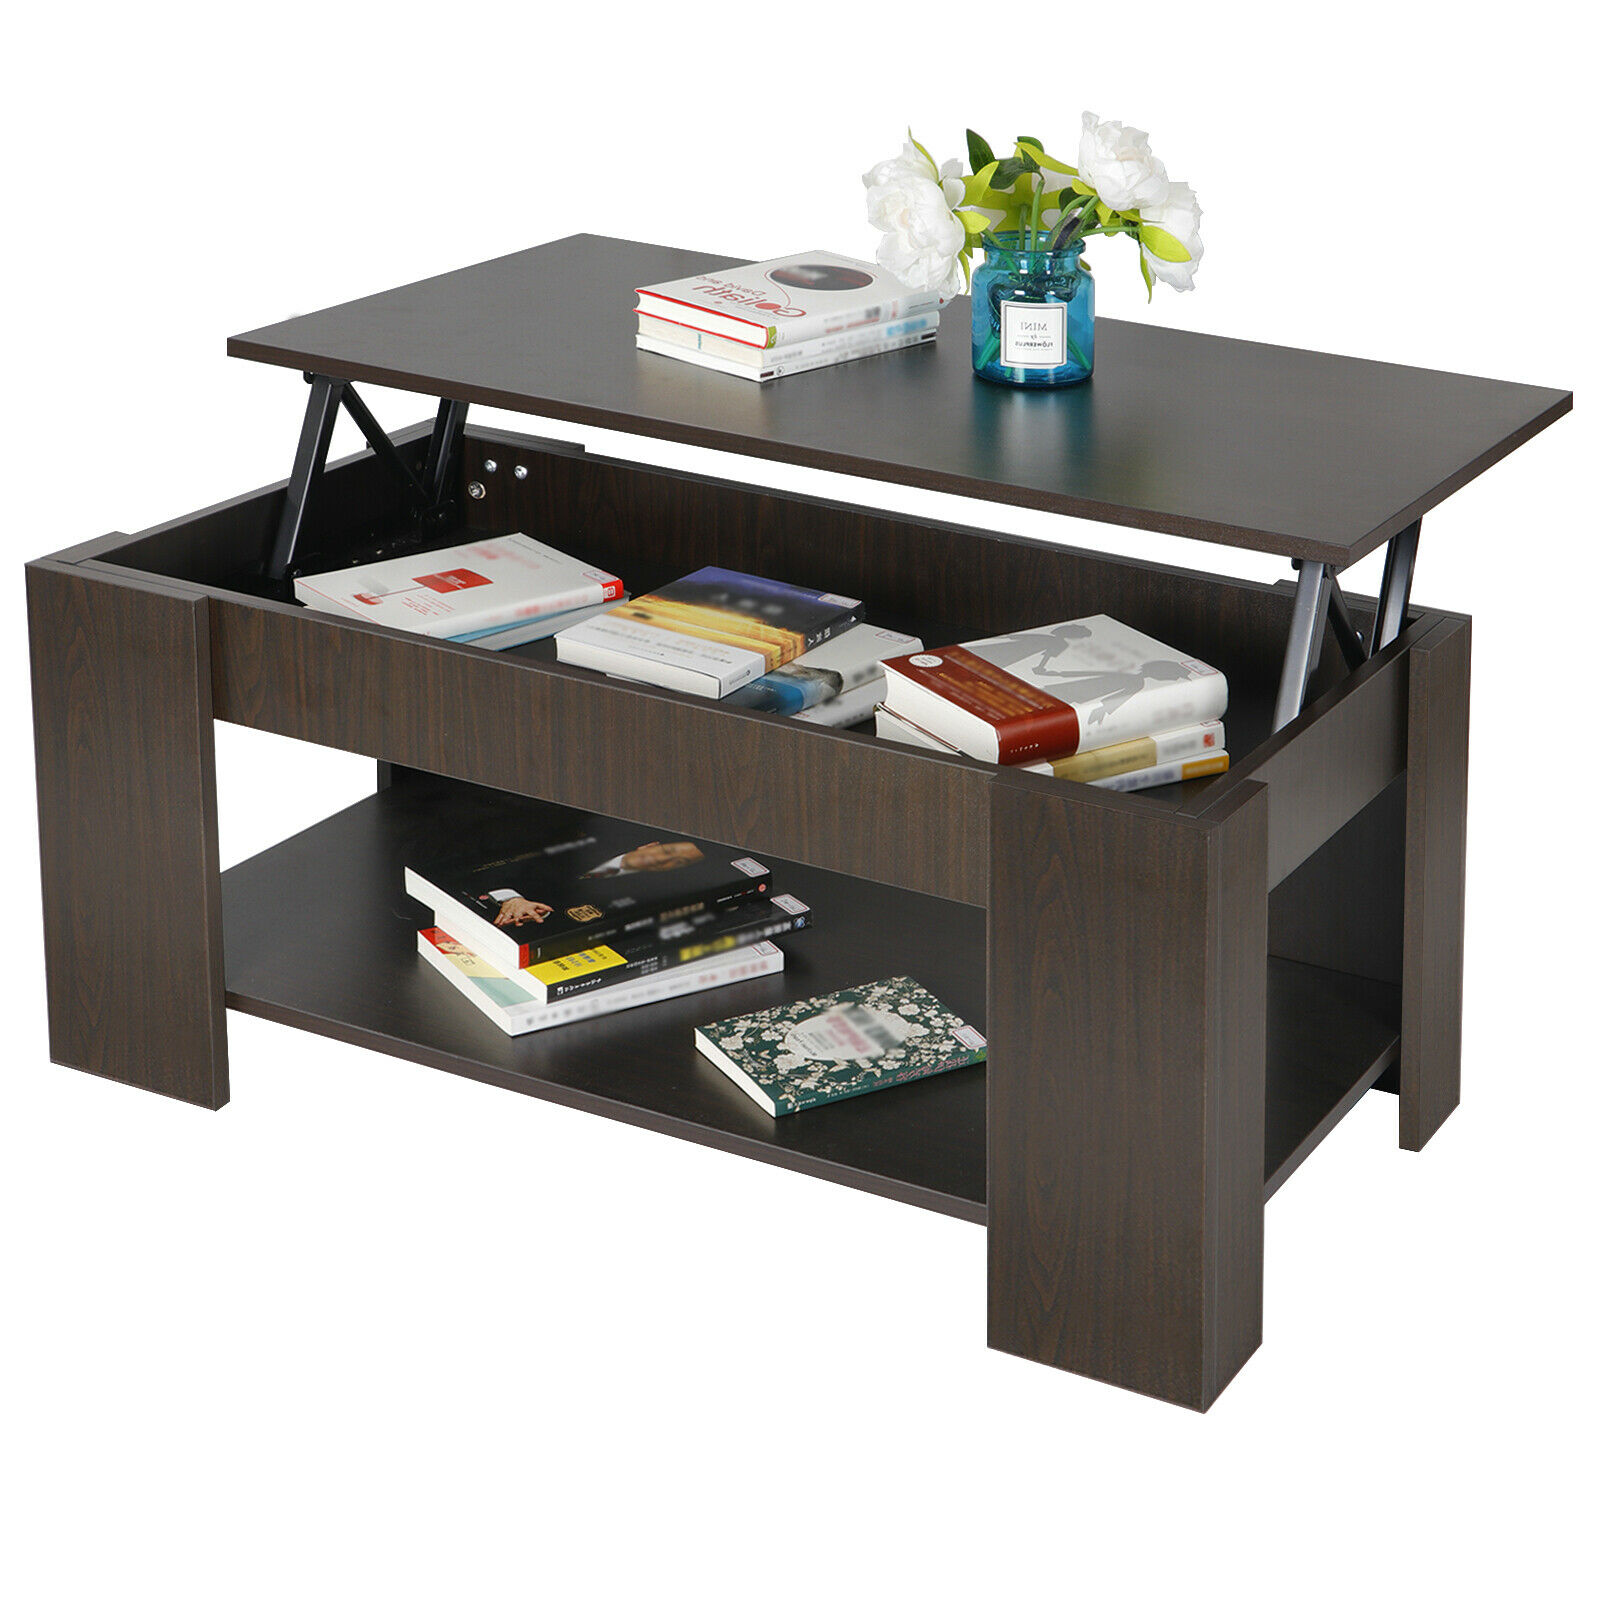 Lift Top Coffee Table w Hidden Compartment Storage Shelf Living Room Furniture Furniture